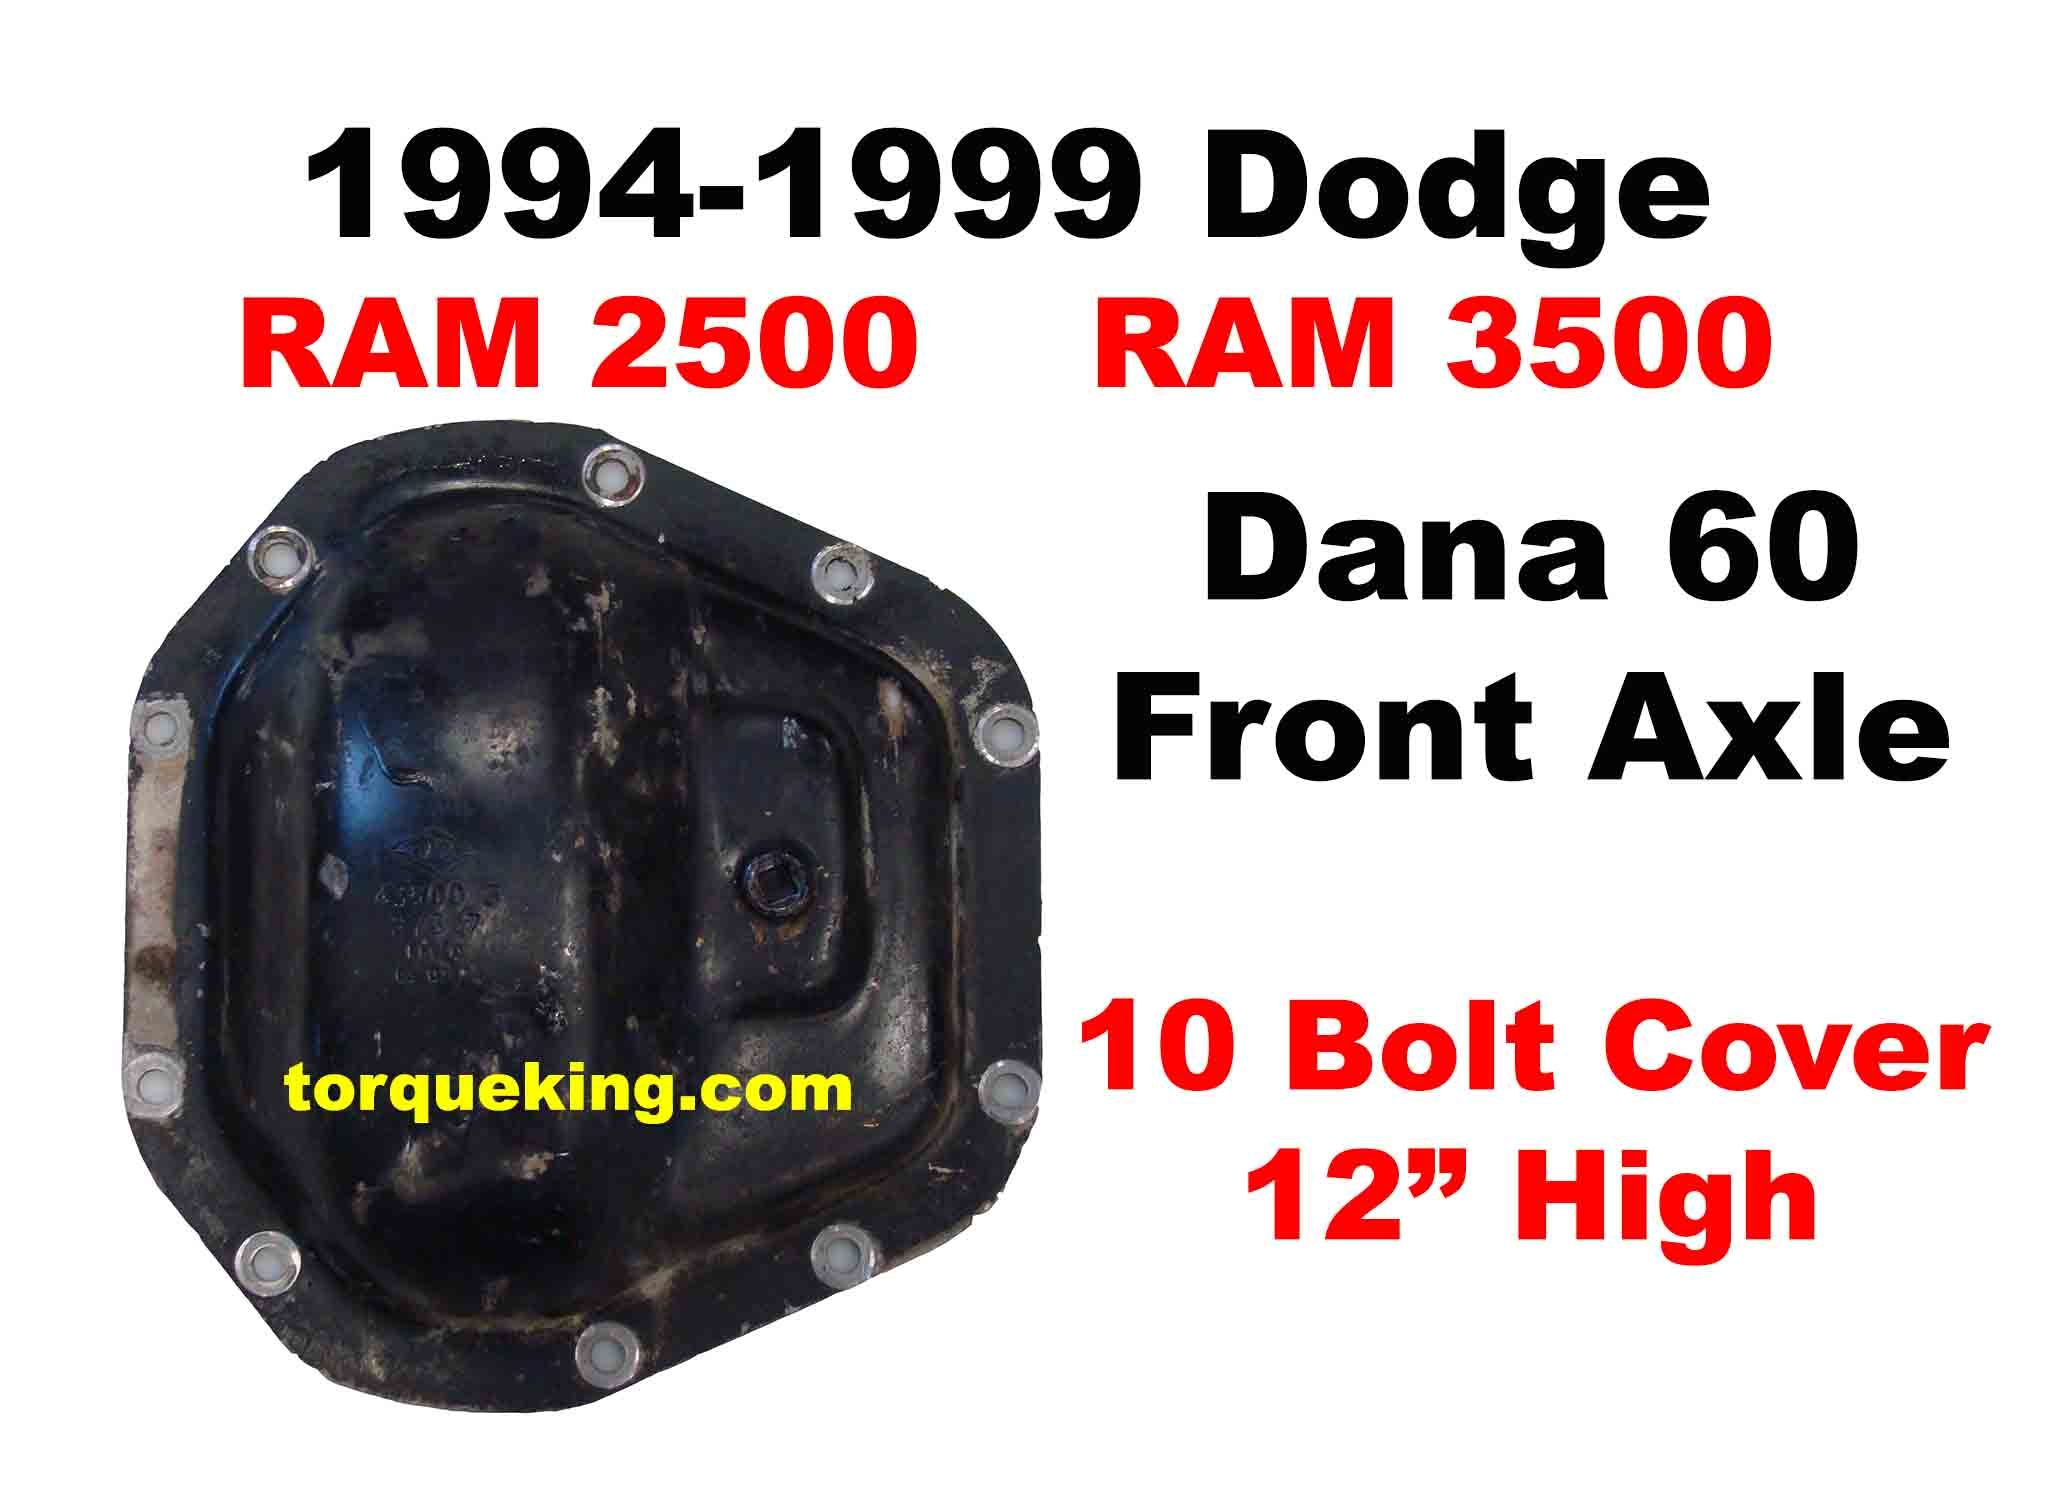 Dodge Dana 60 Front Axle Buy Parts Tools For 1994 To 1999 Ram 2500 3500 Dana 60 Front Axles Torque King